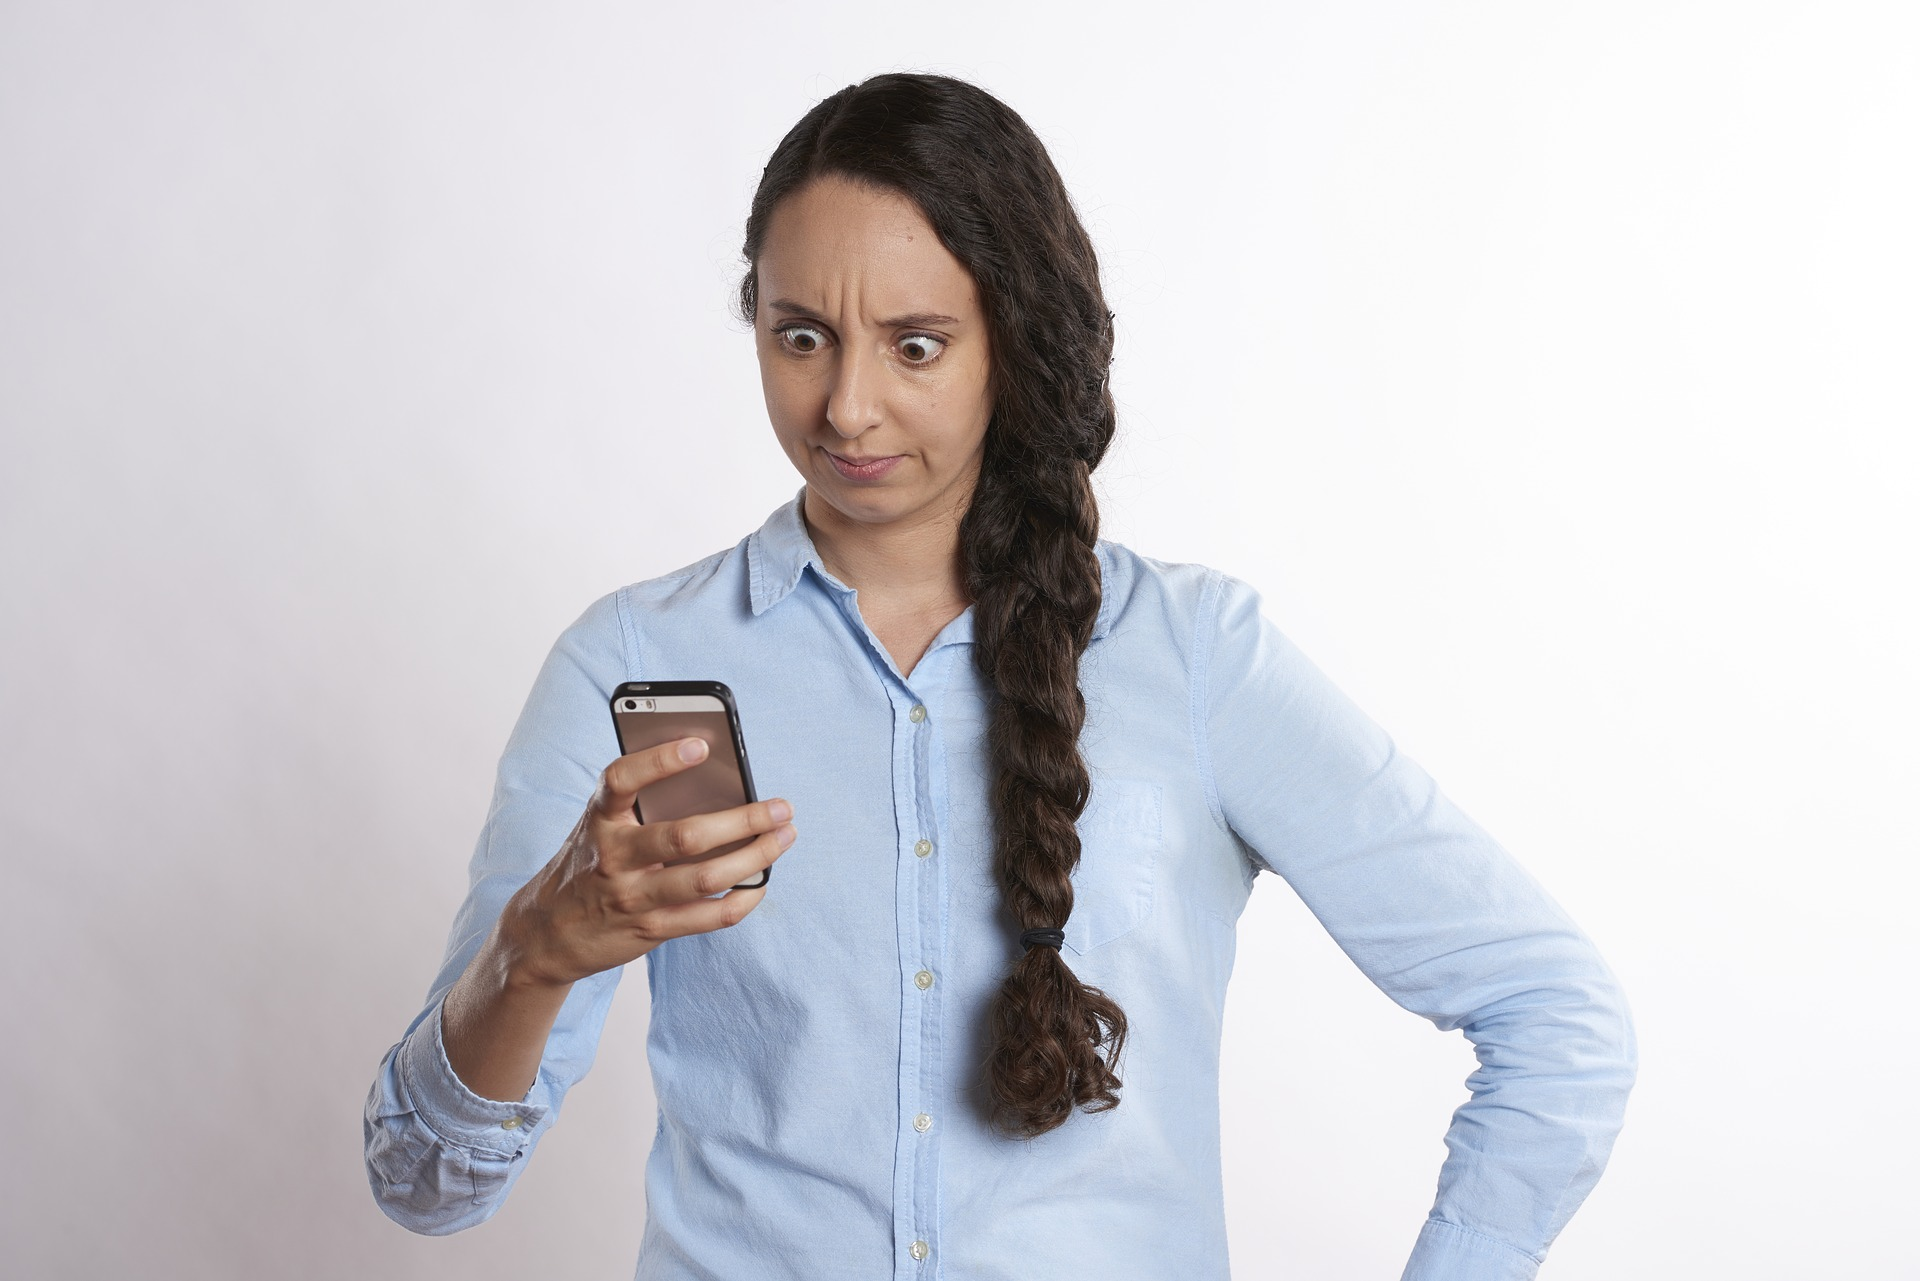 FCC is helping to fight against spam calls